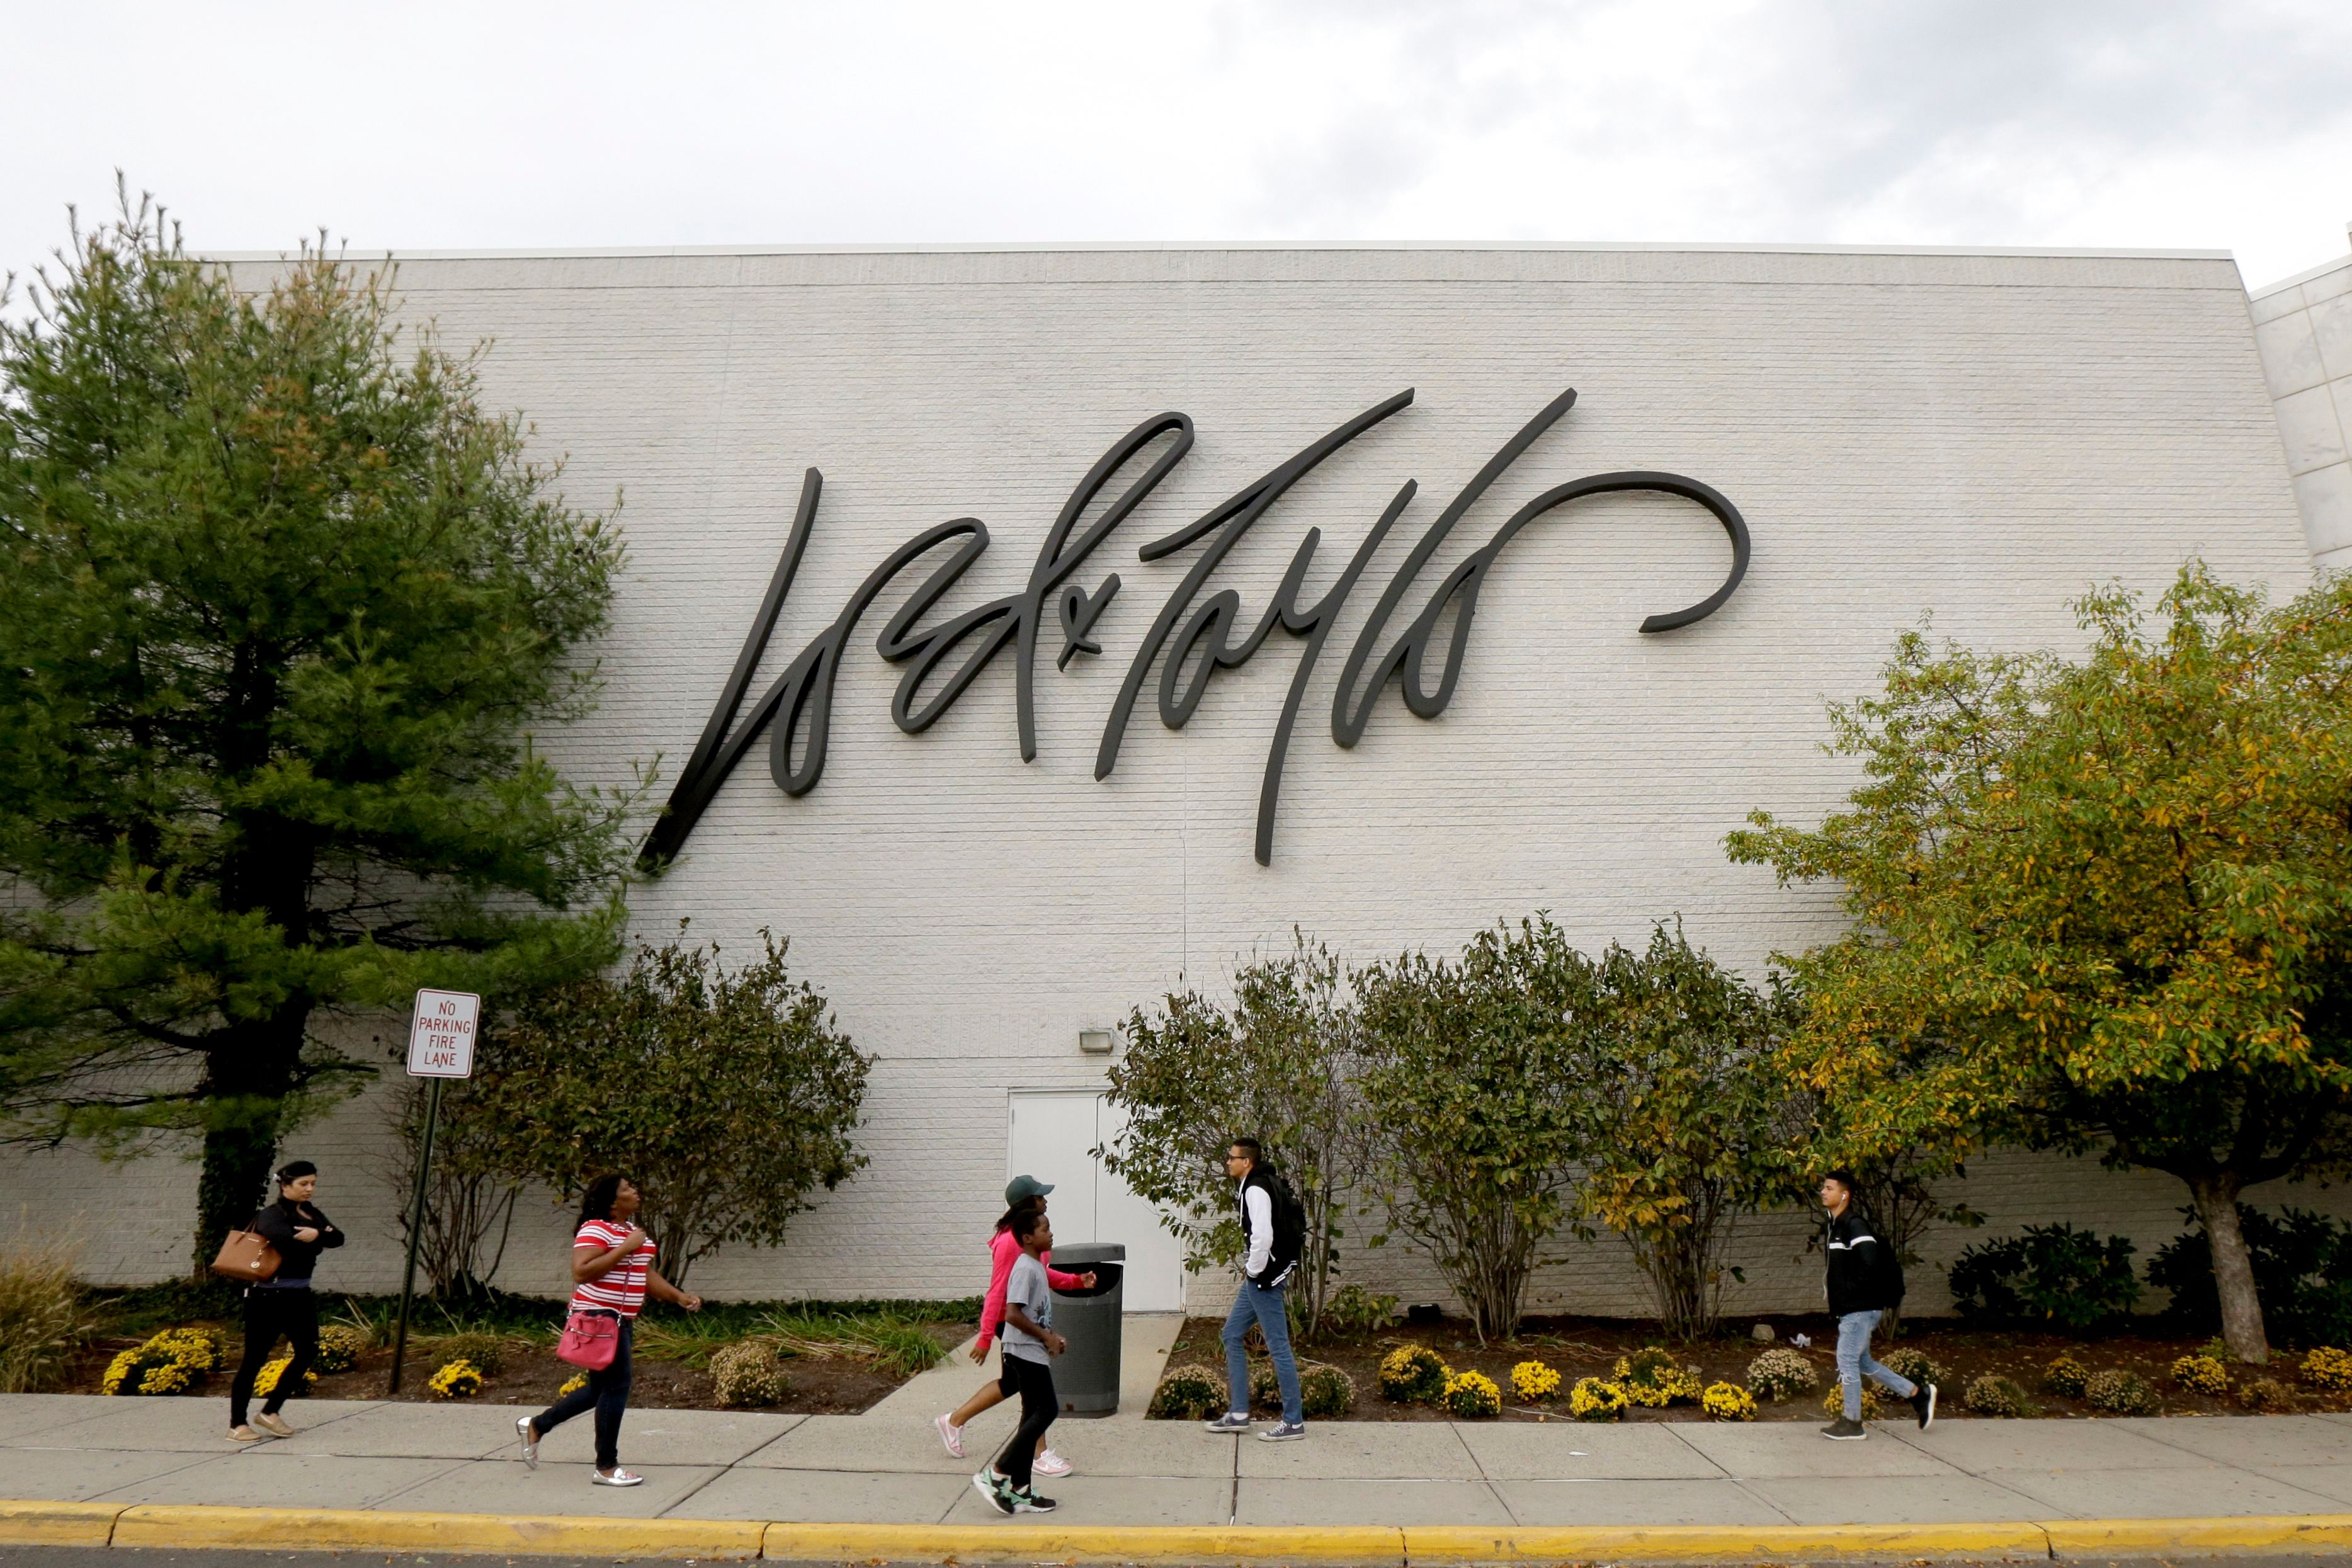 People walk on a sidewalk along the entrance to Lord & Taylor department store at Garden State Plaza, in Paramus, N.JNew Jersey Retailer Stores, Paramus, USA - 25 Oct 2017